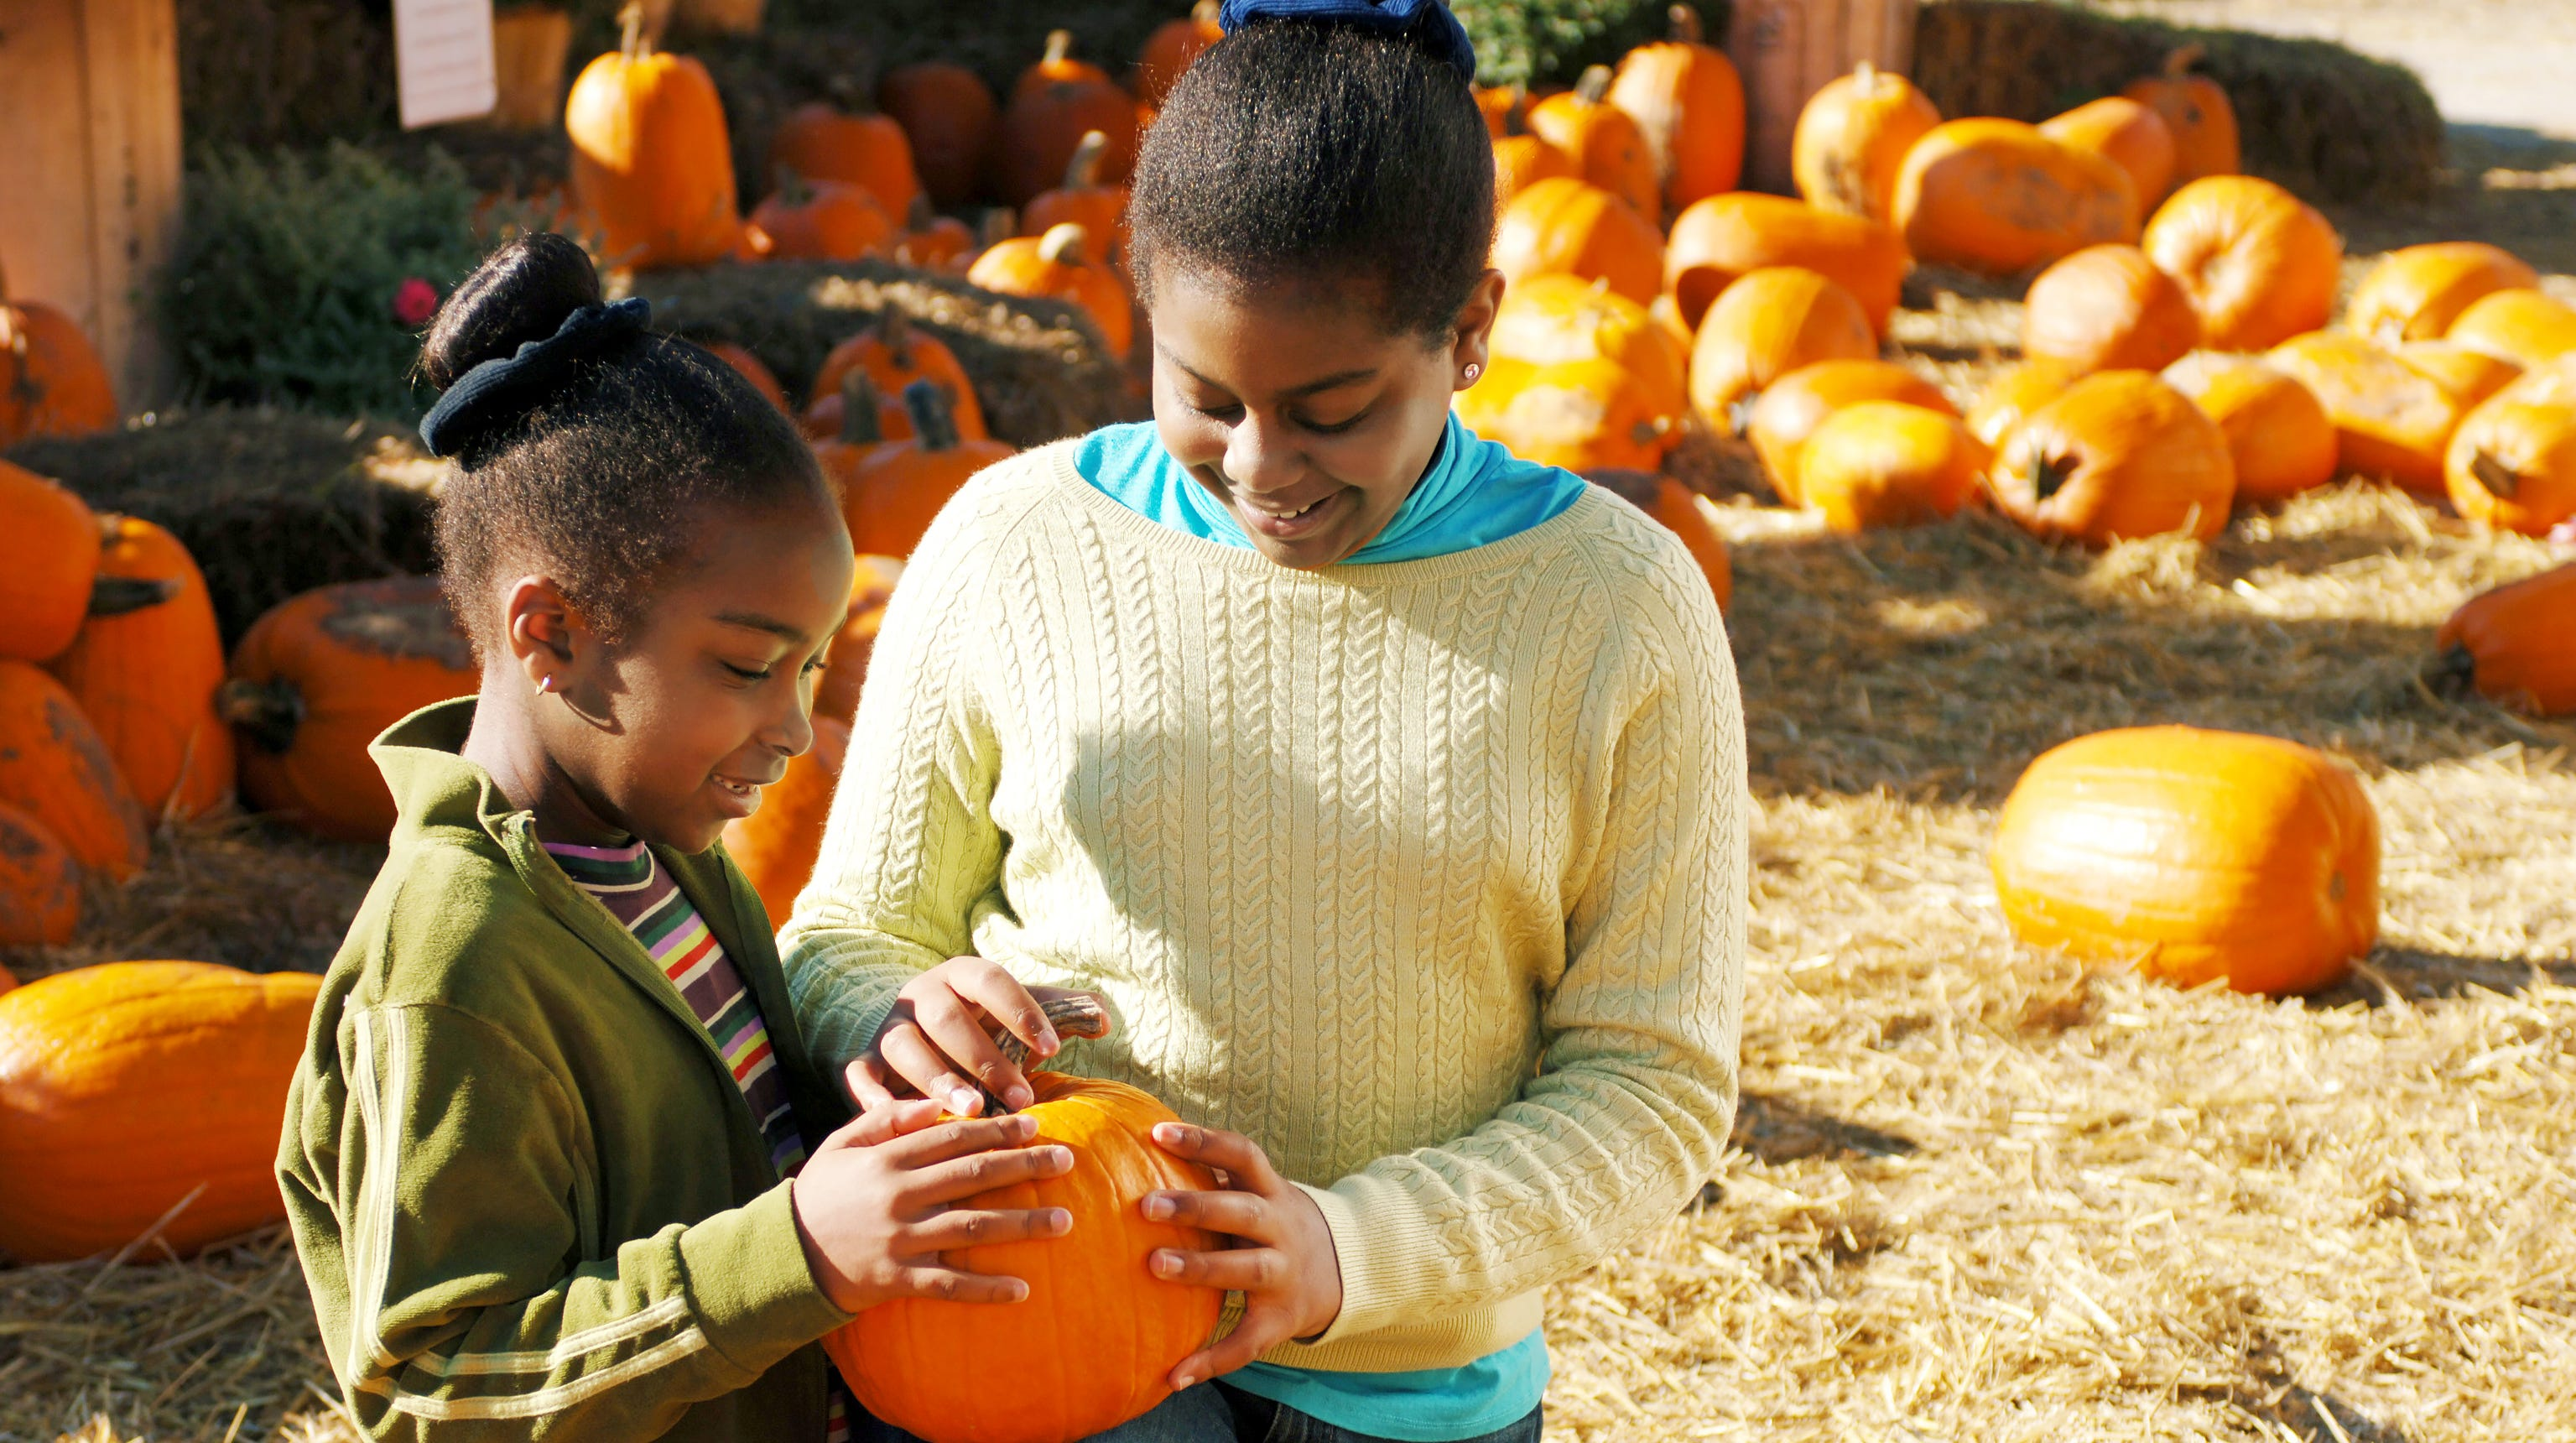 Pumpkin patches are a fall tradition perfect for